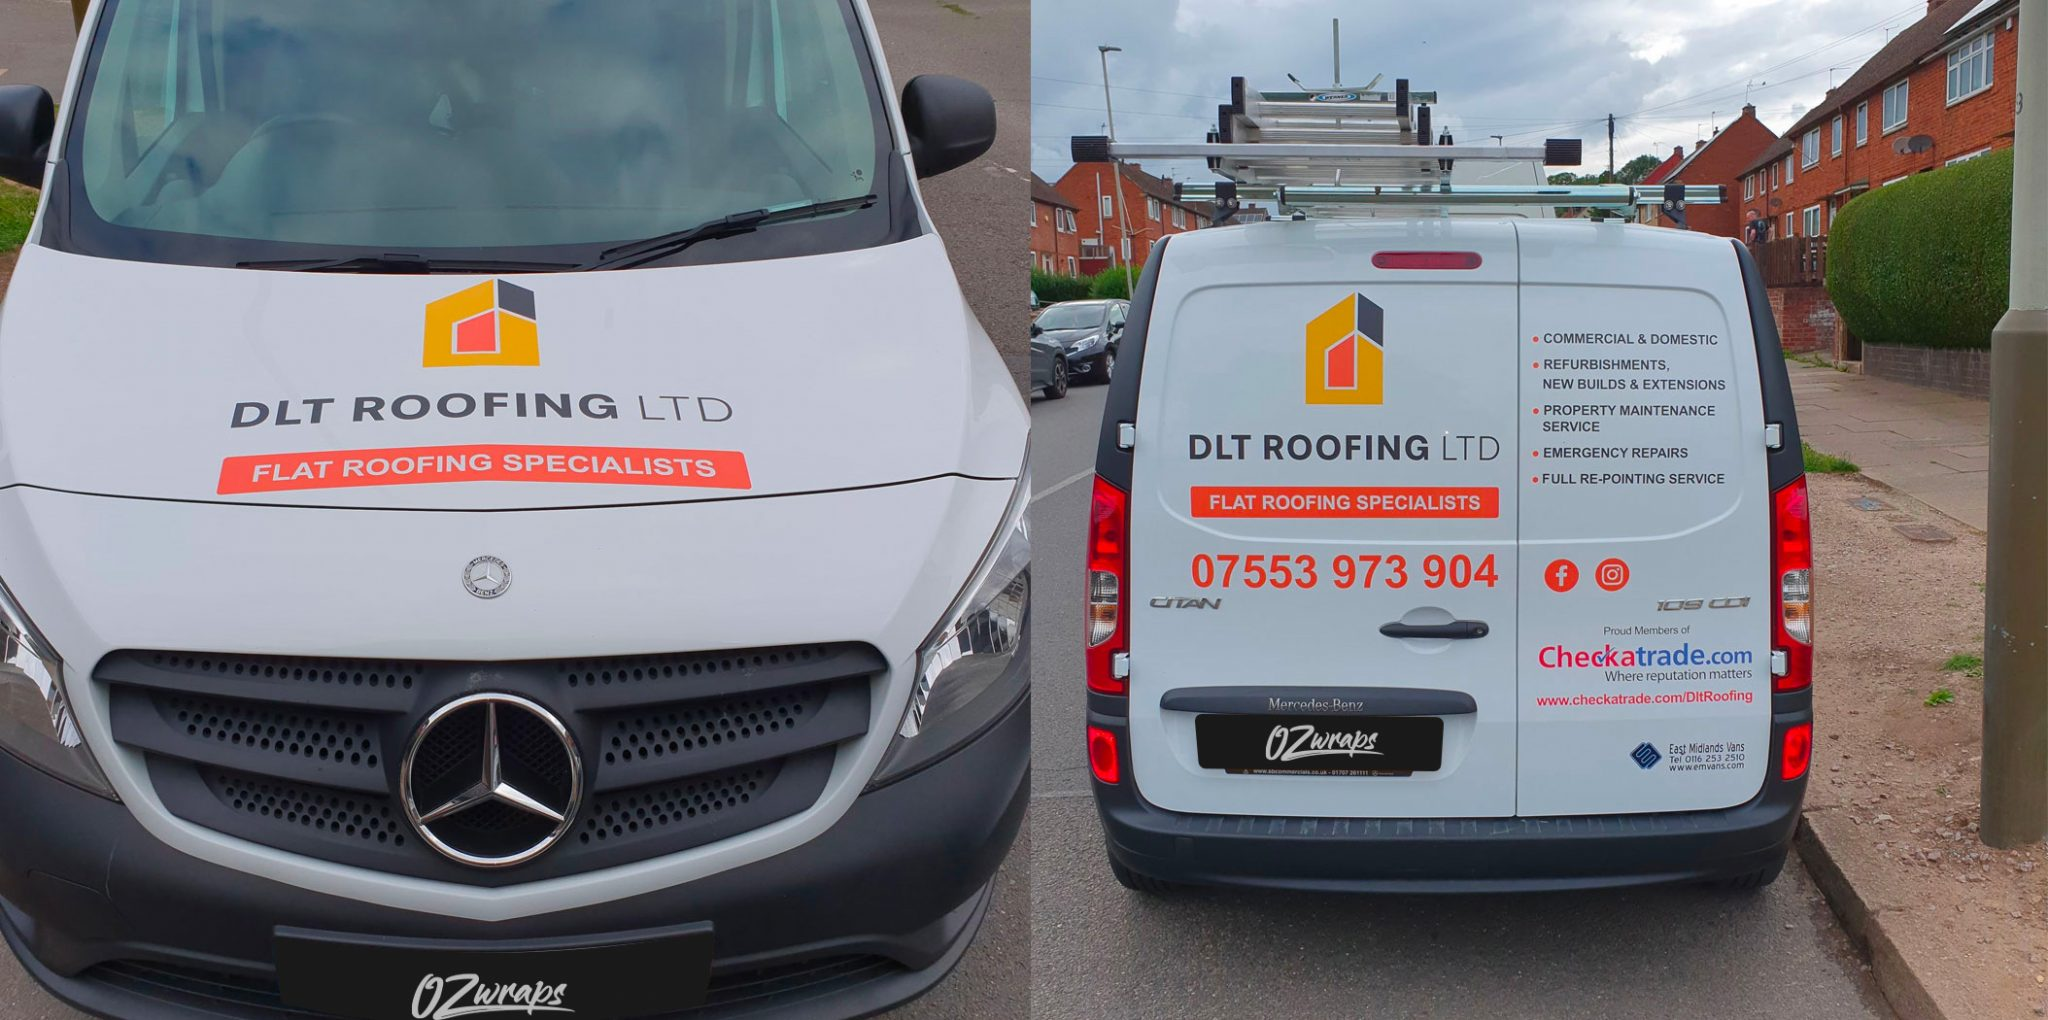 DLT Roofing number and plates stickers